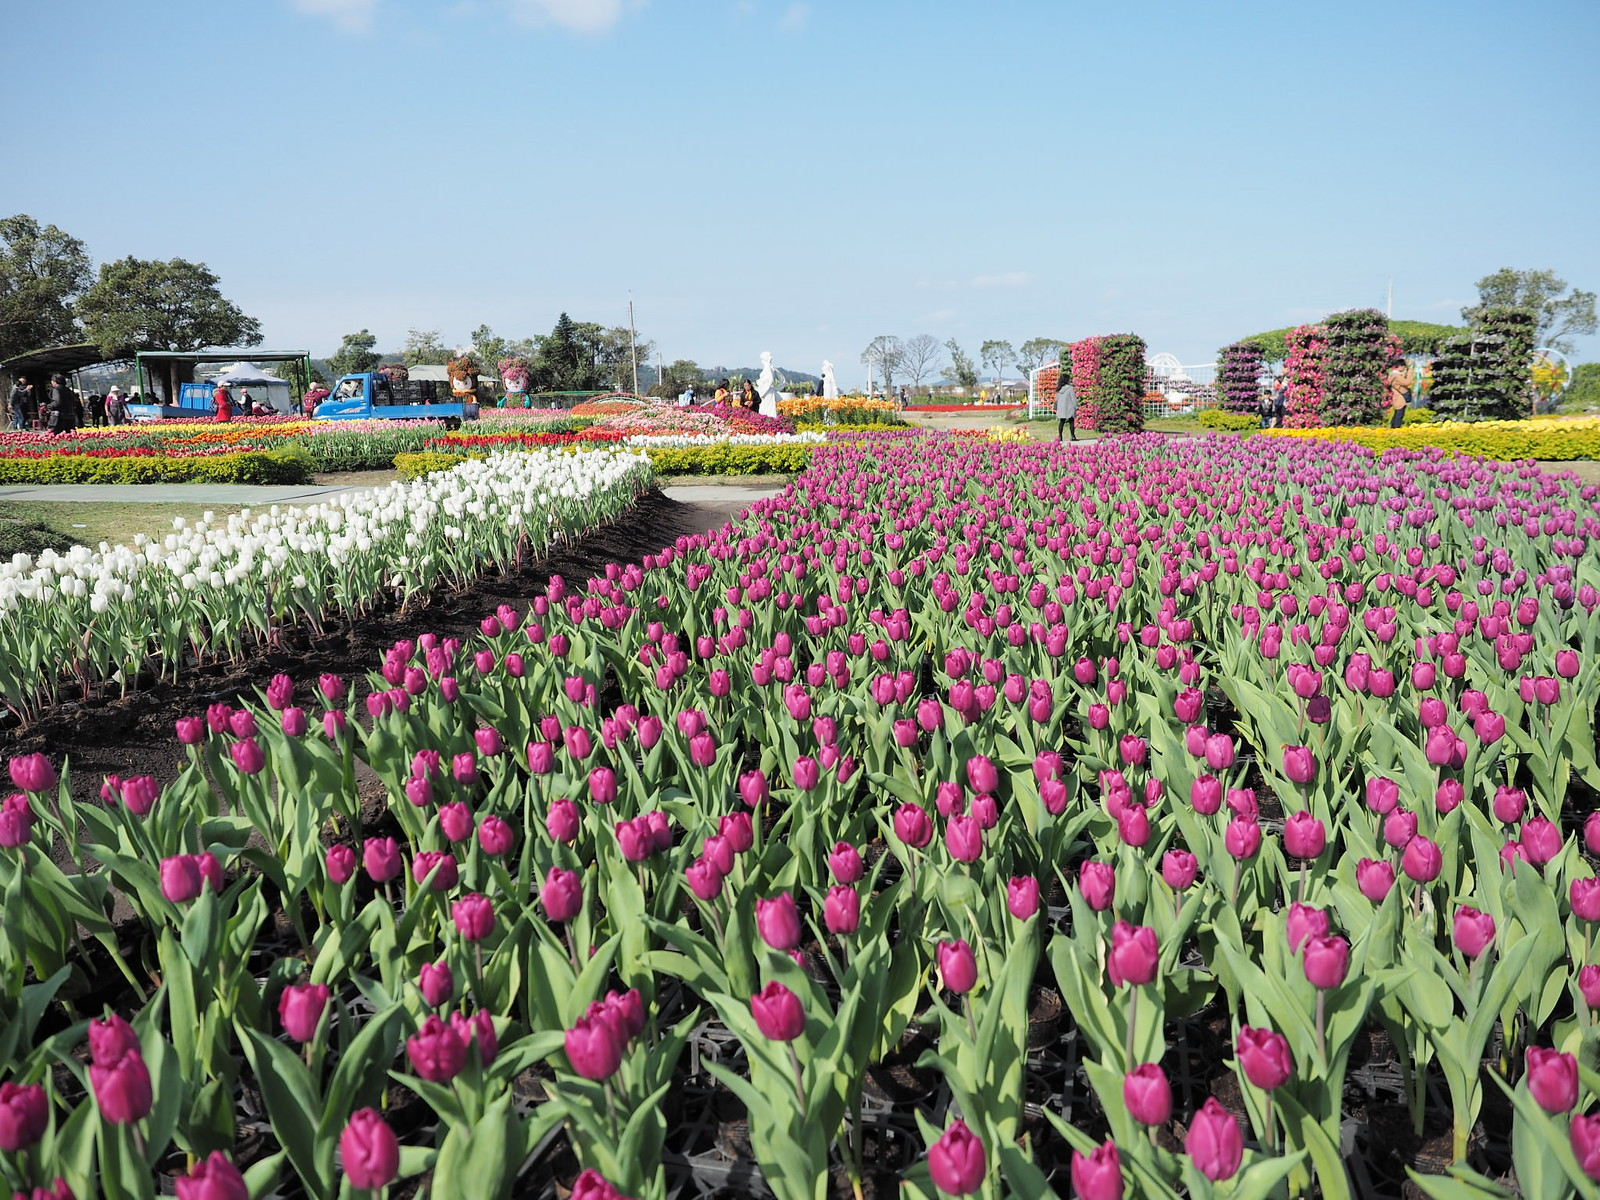 Sea of tulips at Chungshe Flower Garden (中社觀光花市)